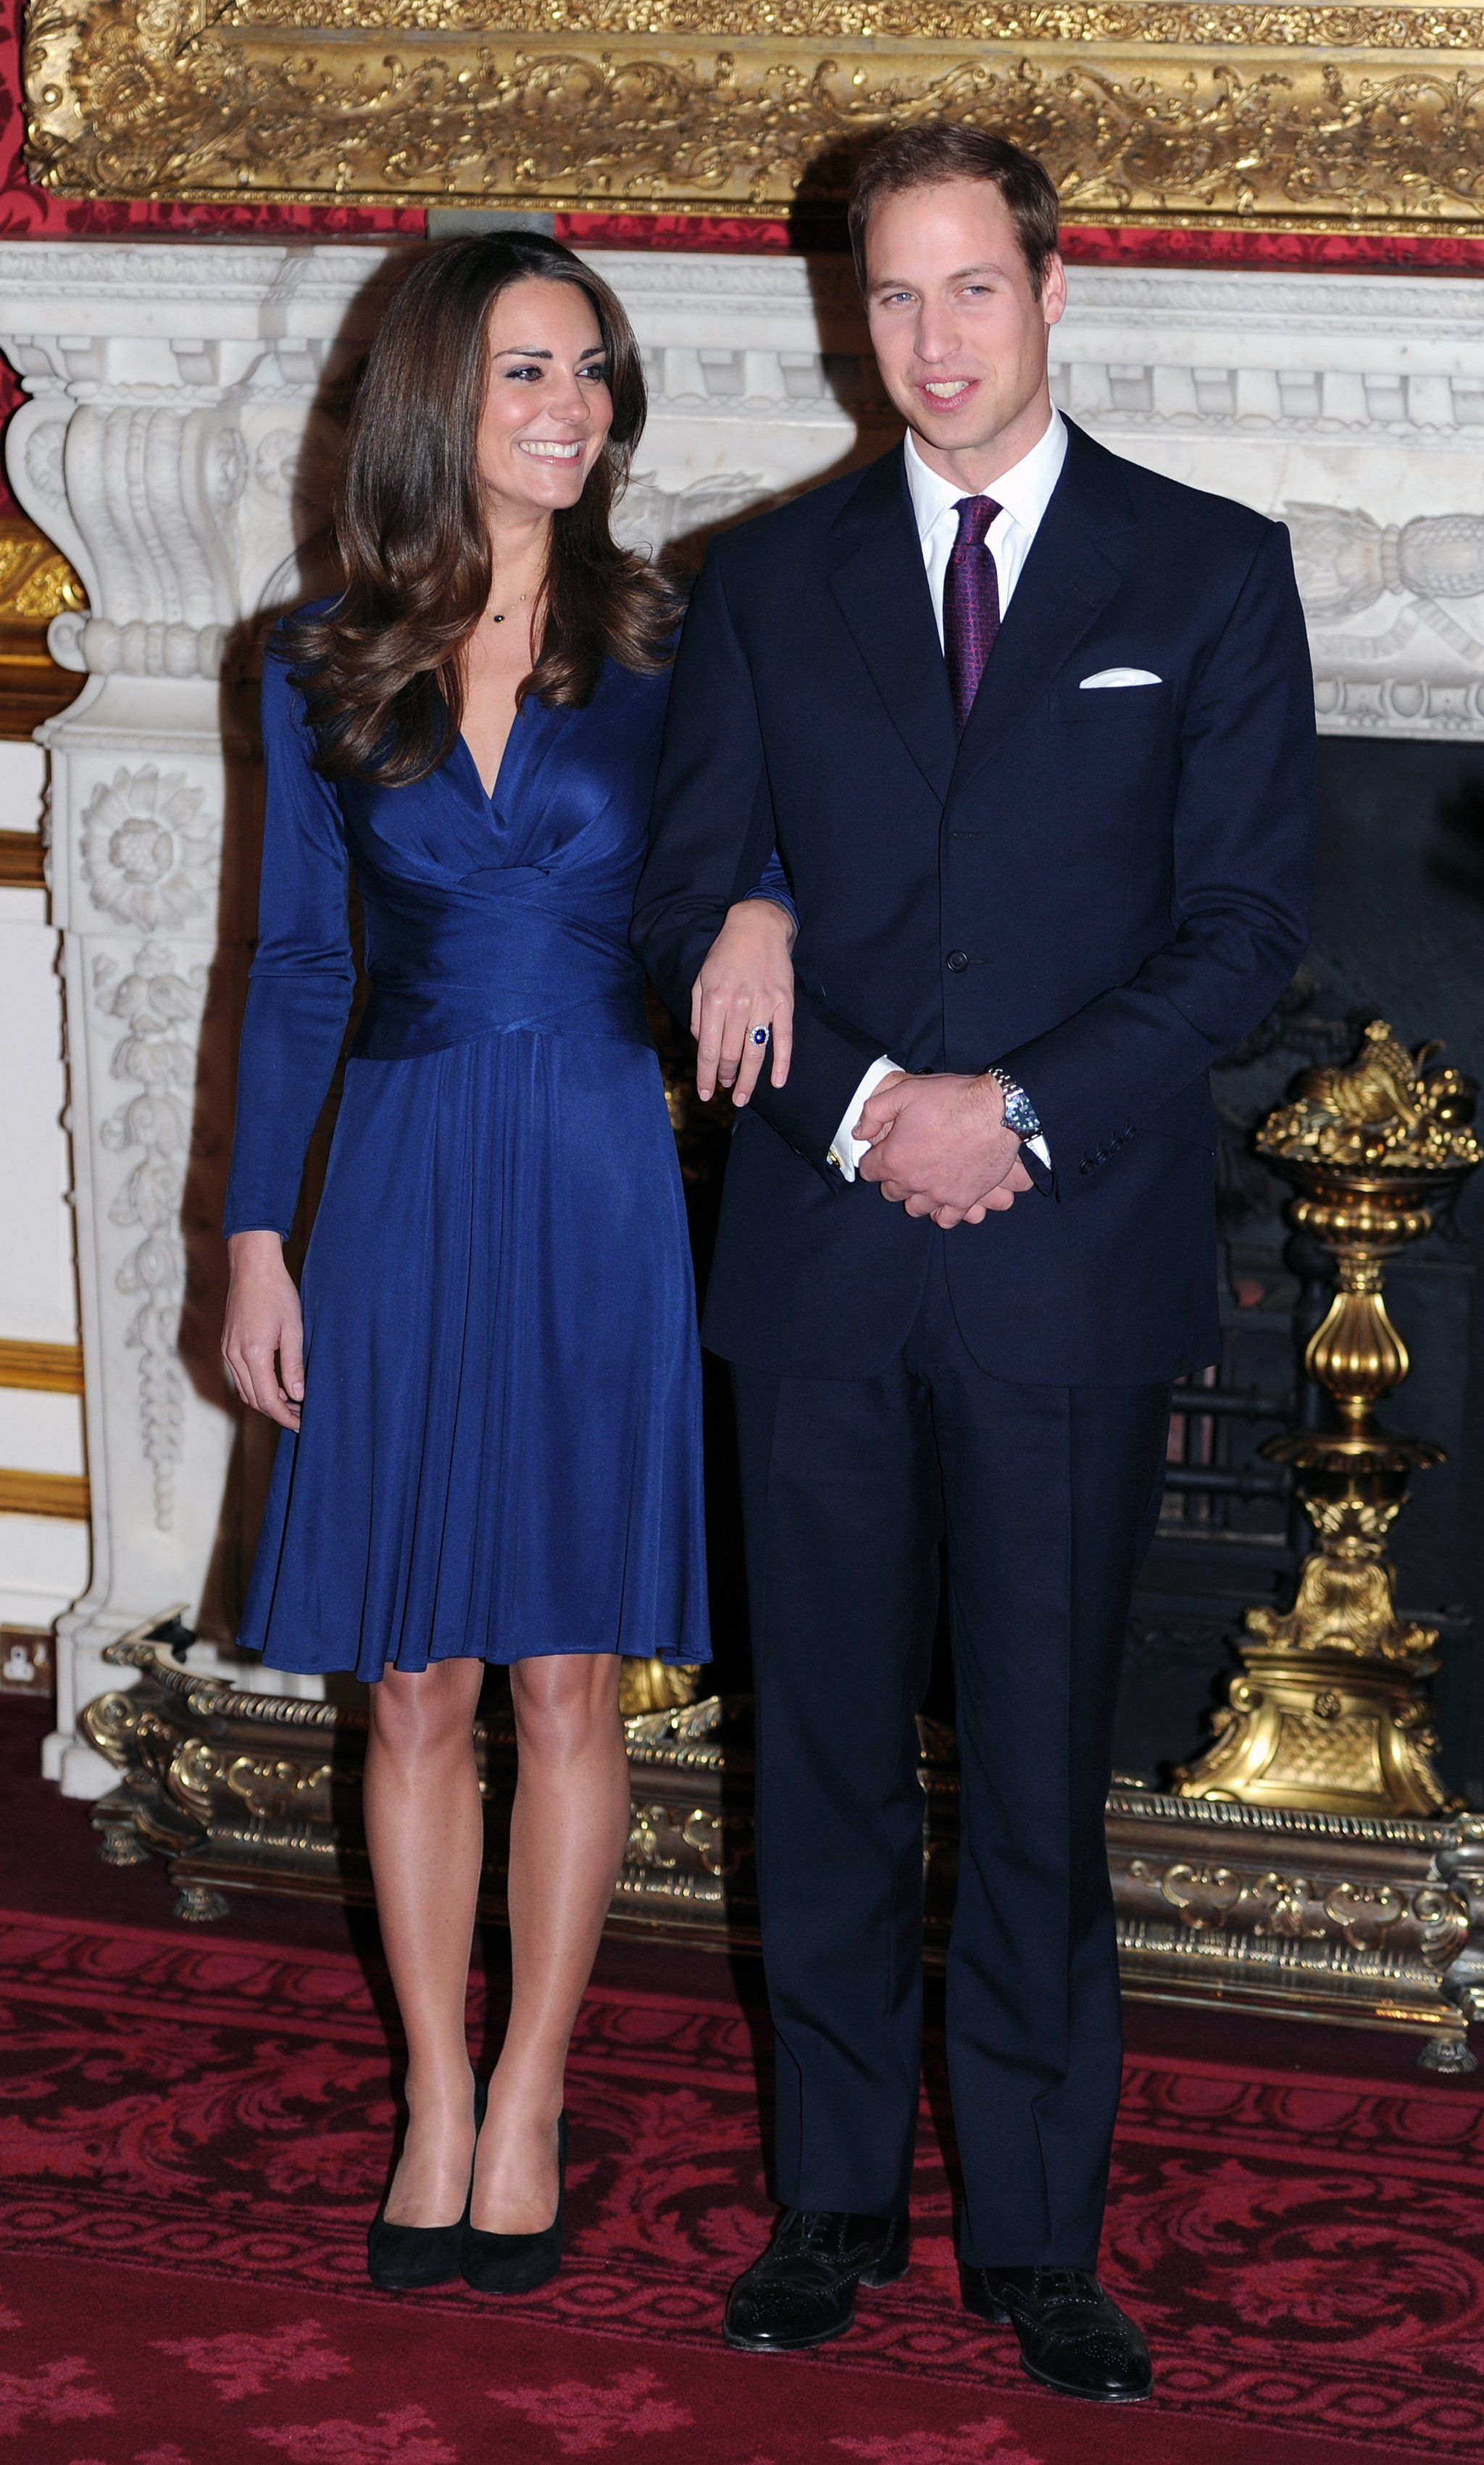 Kate Middletons Iconic Engagement Dress Is Now Super Affordable